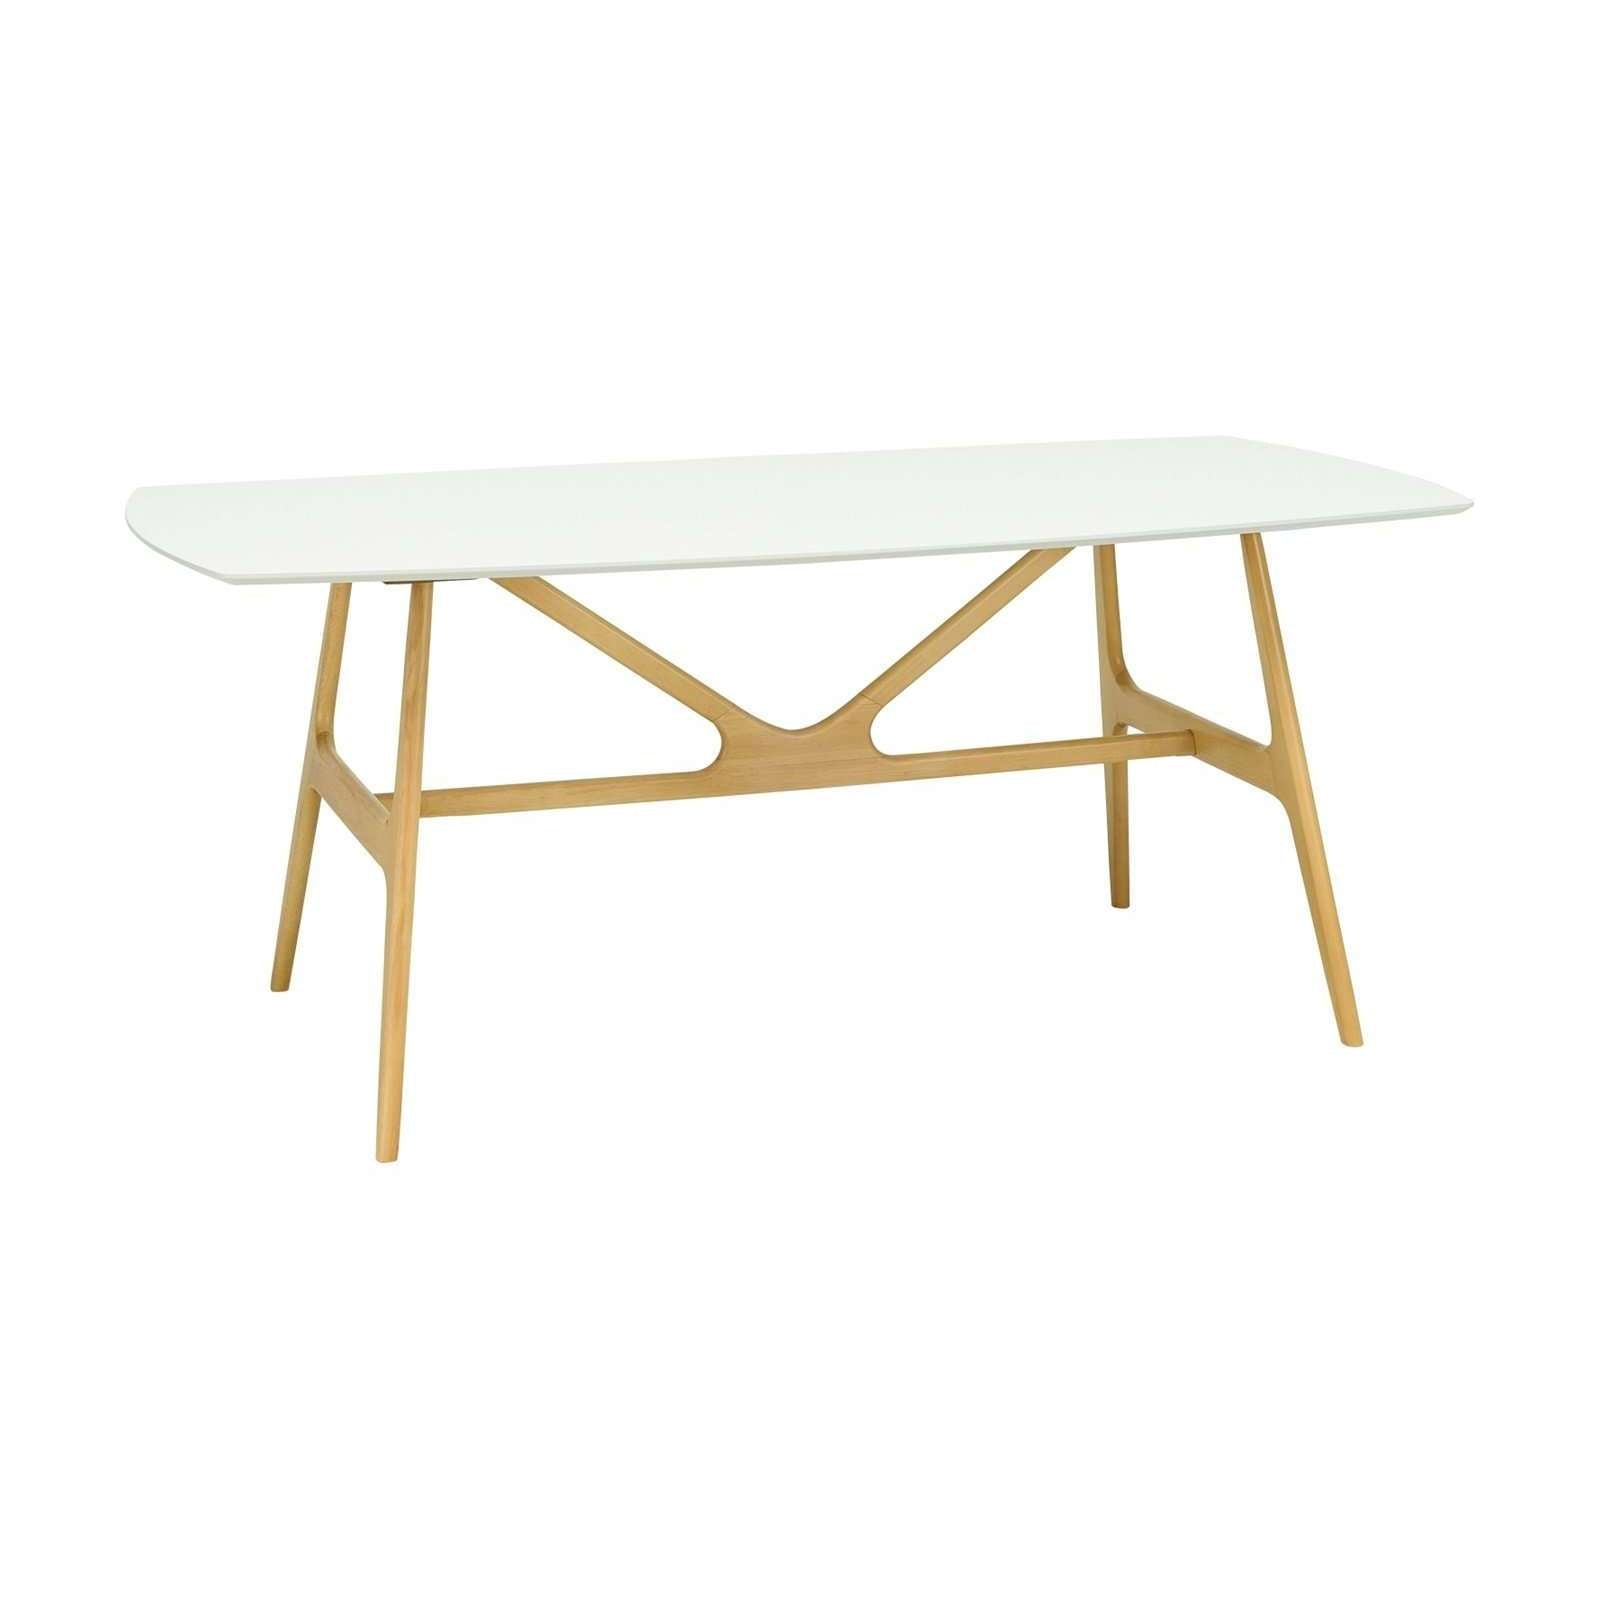 FILA 1.8m Dining Table In Natural Colour Leg, White Lacquered Top